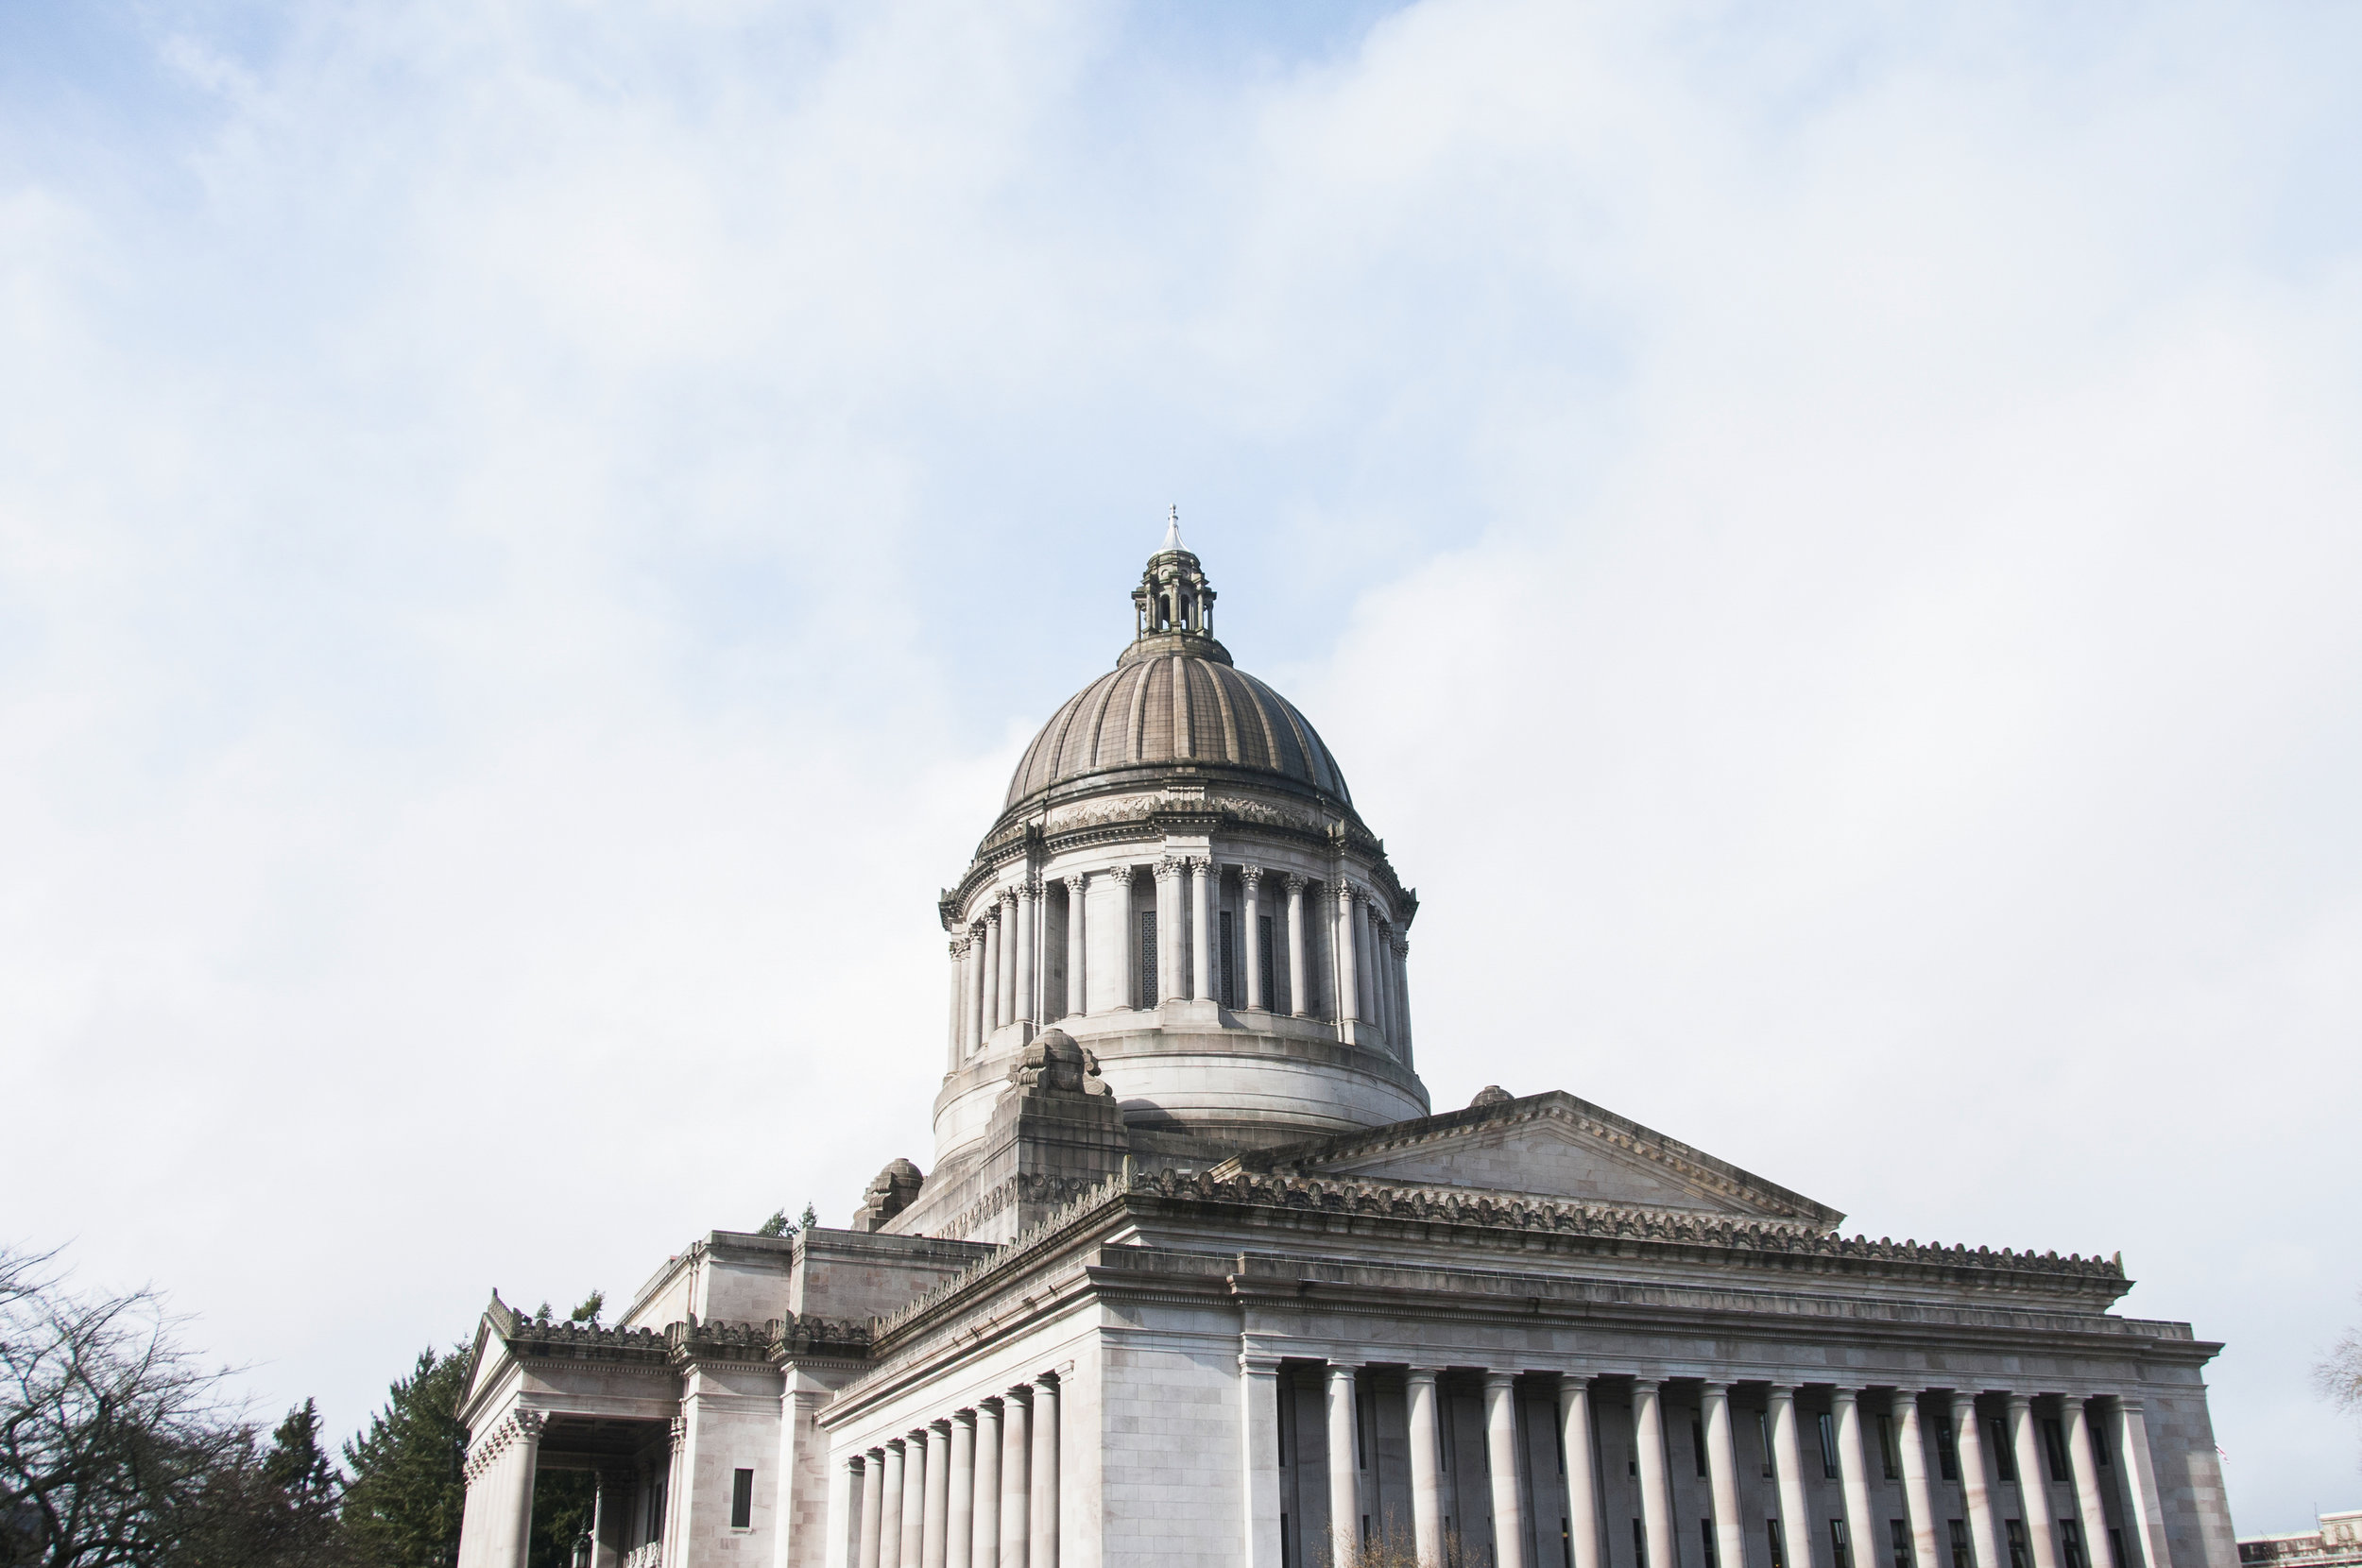 The Washington State Capitol building. Photo by Hannah Letinich.